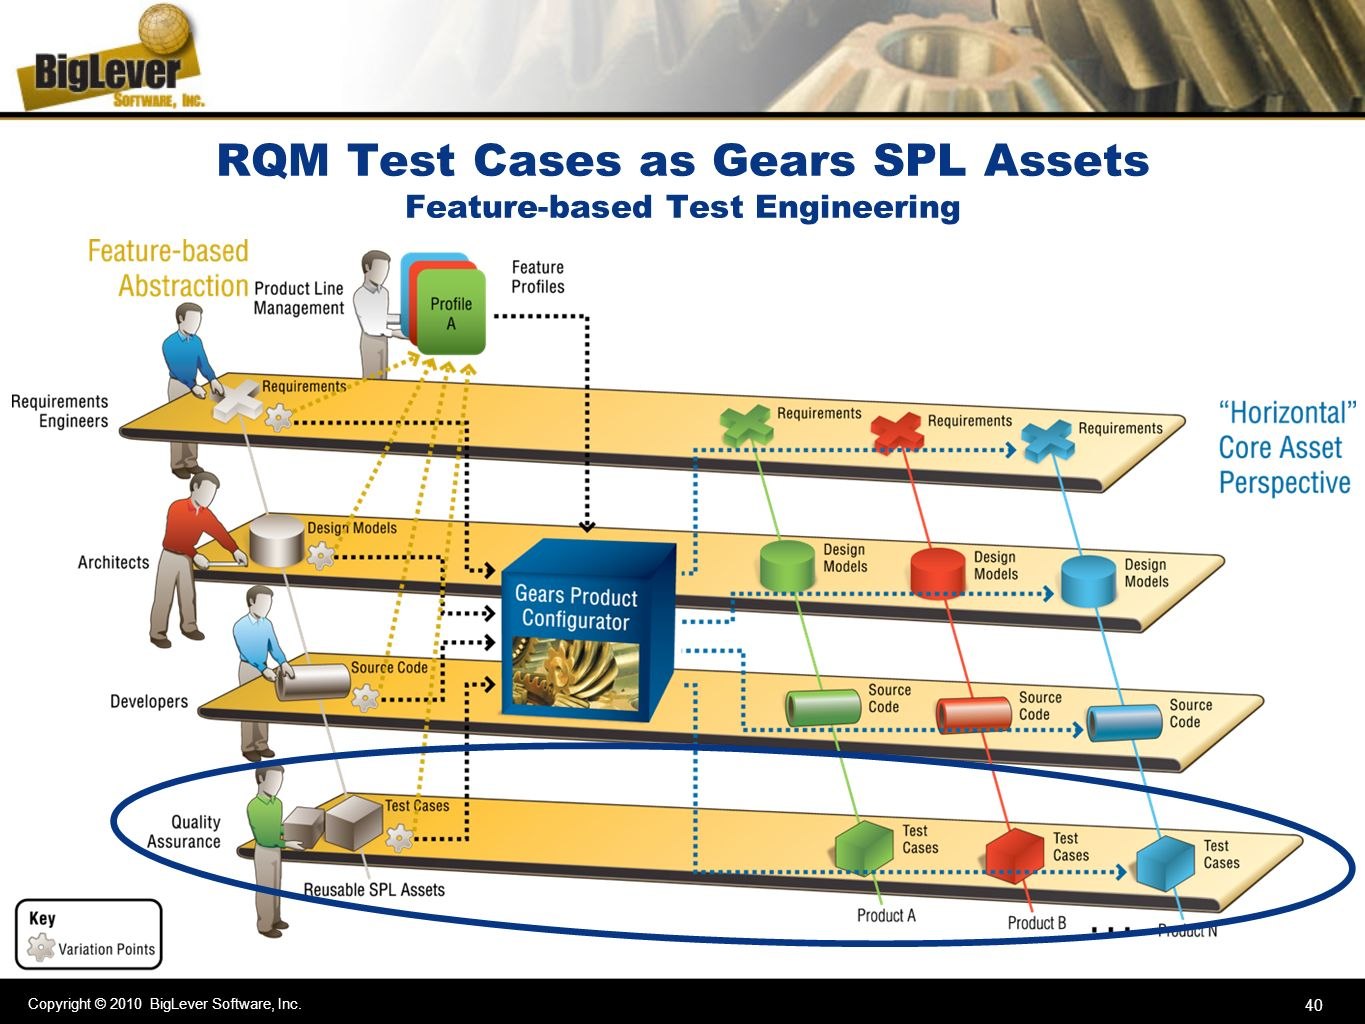 RQM Test Cases as Gears SPL Assets Feature-based Test Engineering